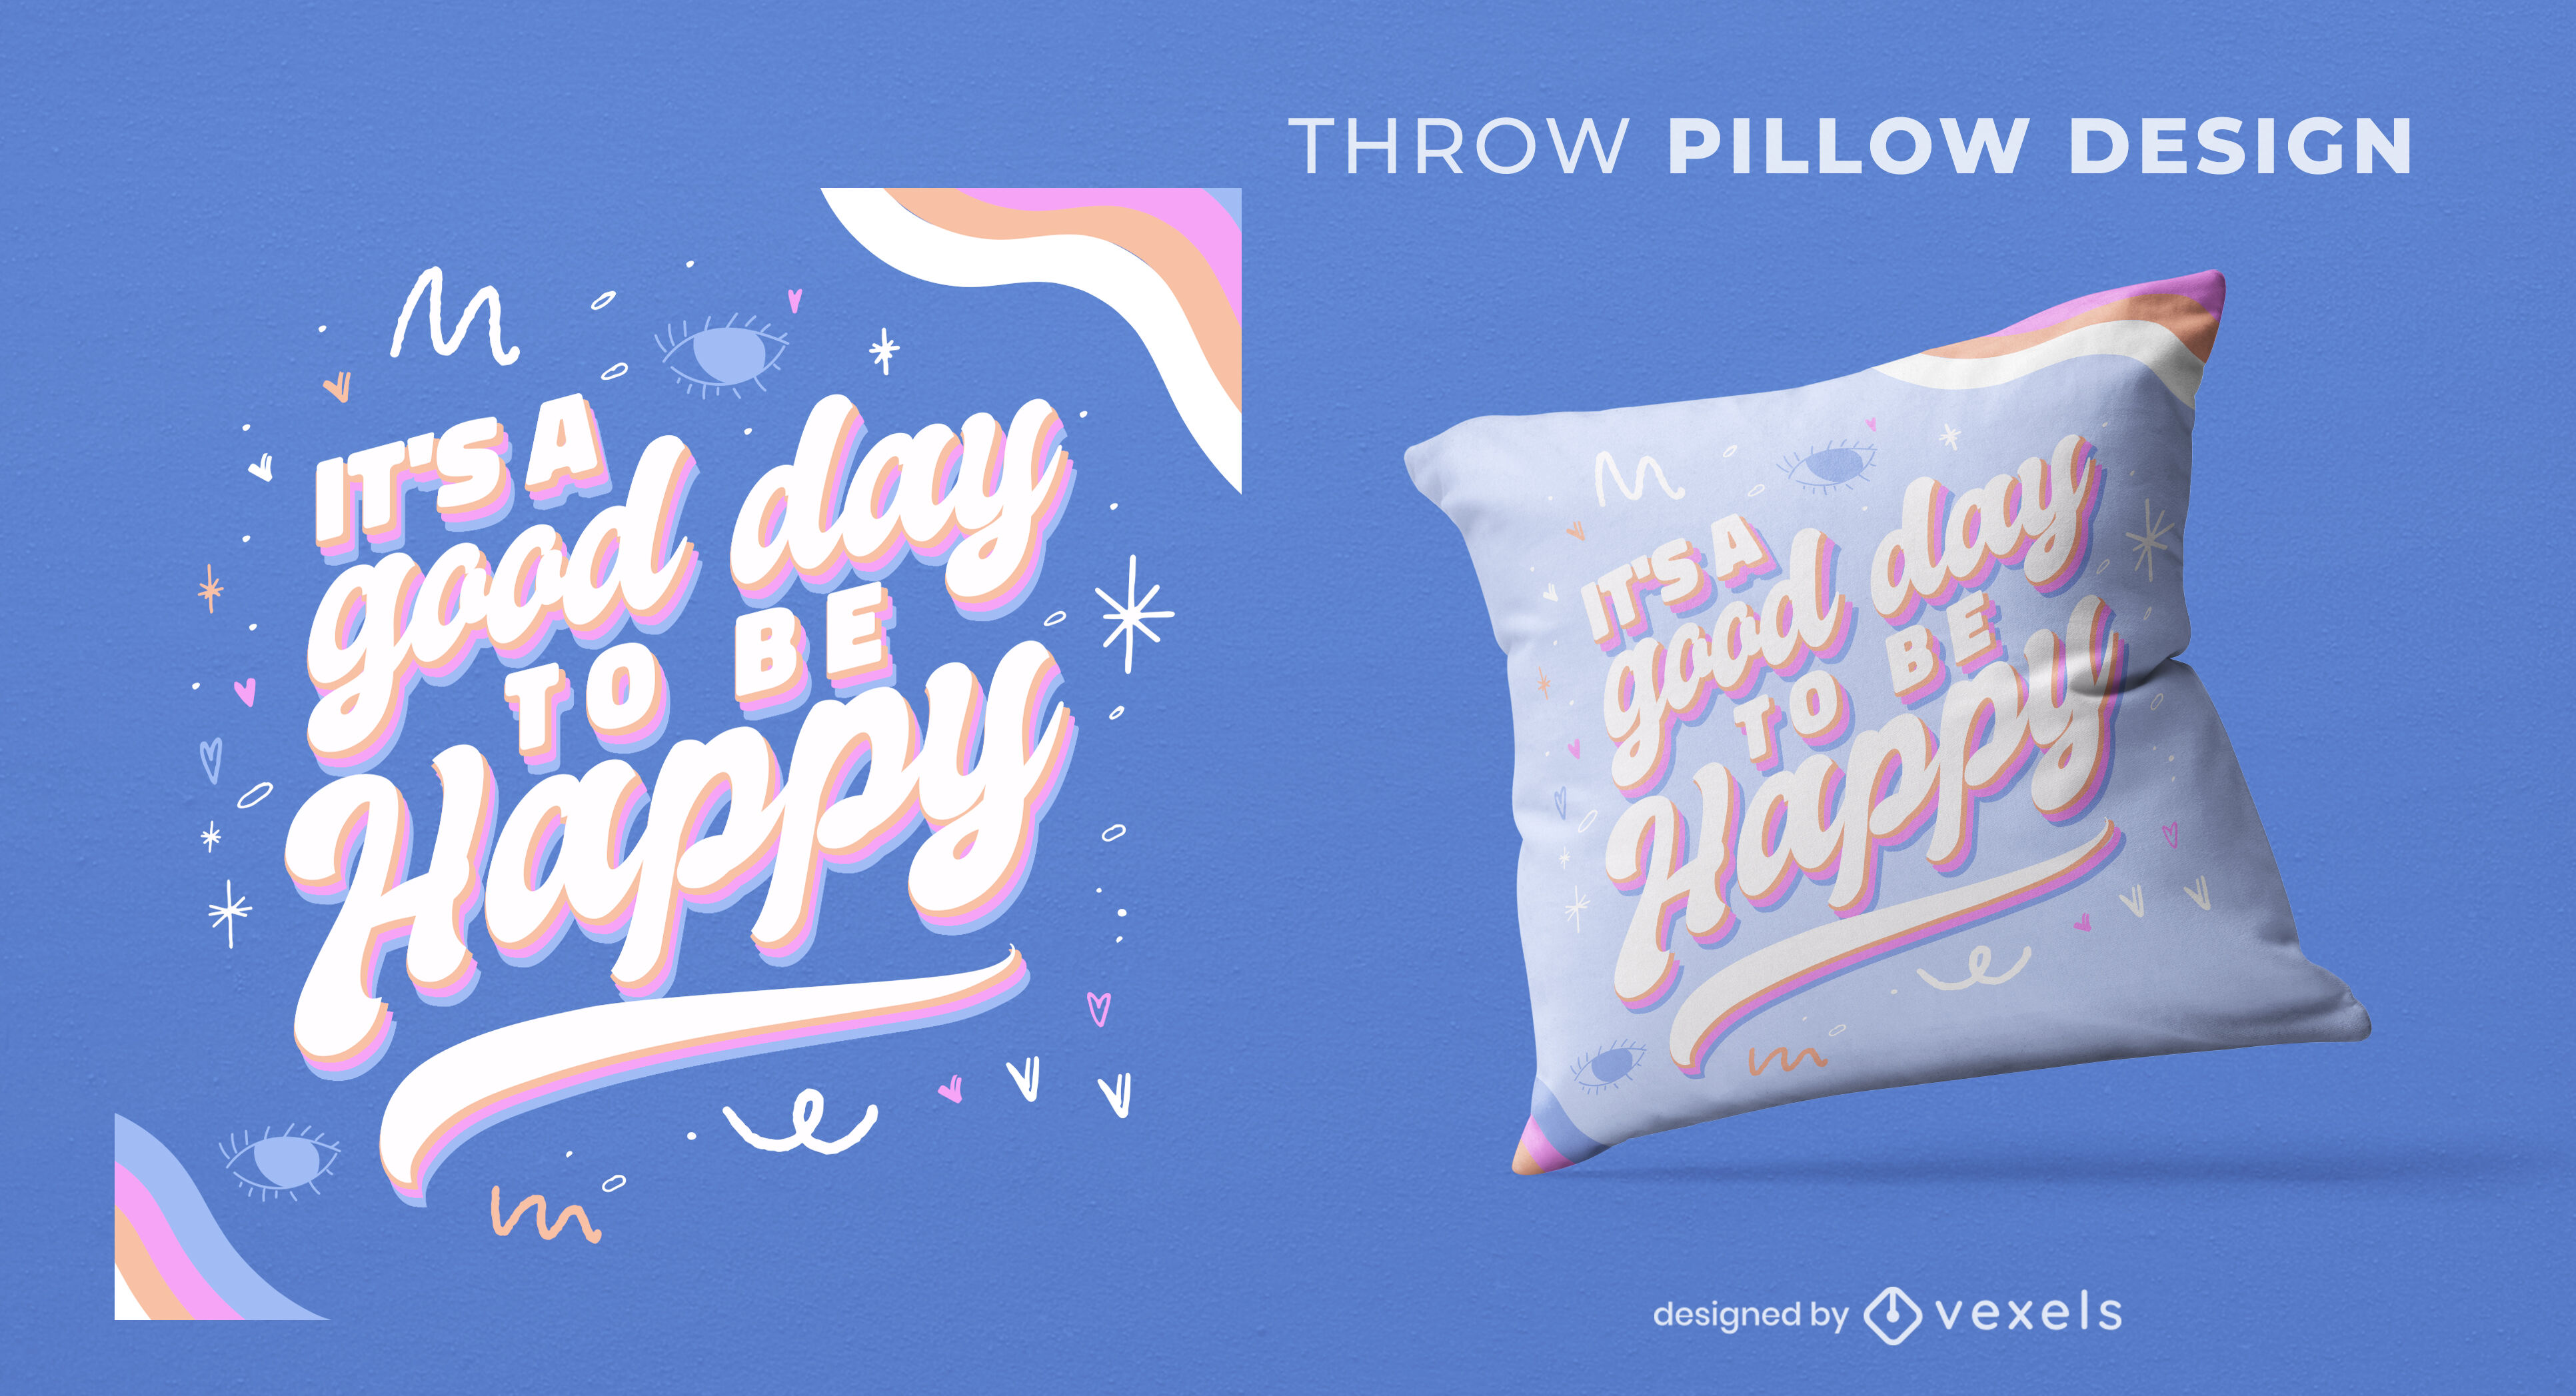 Happy day quote throw pillow design